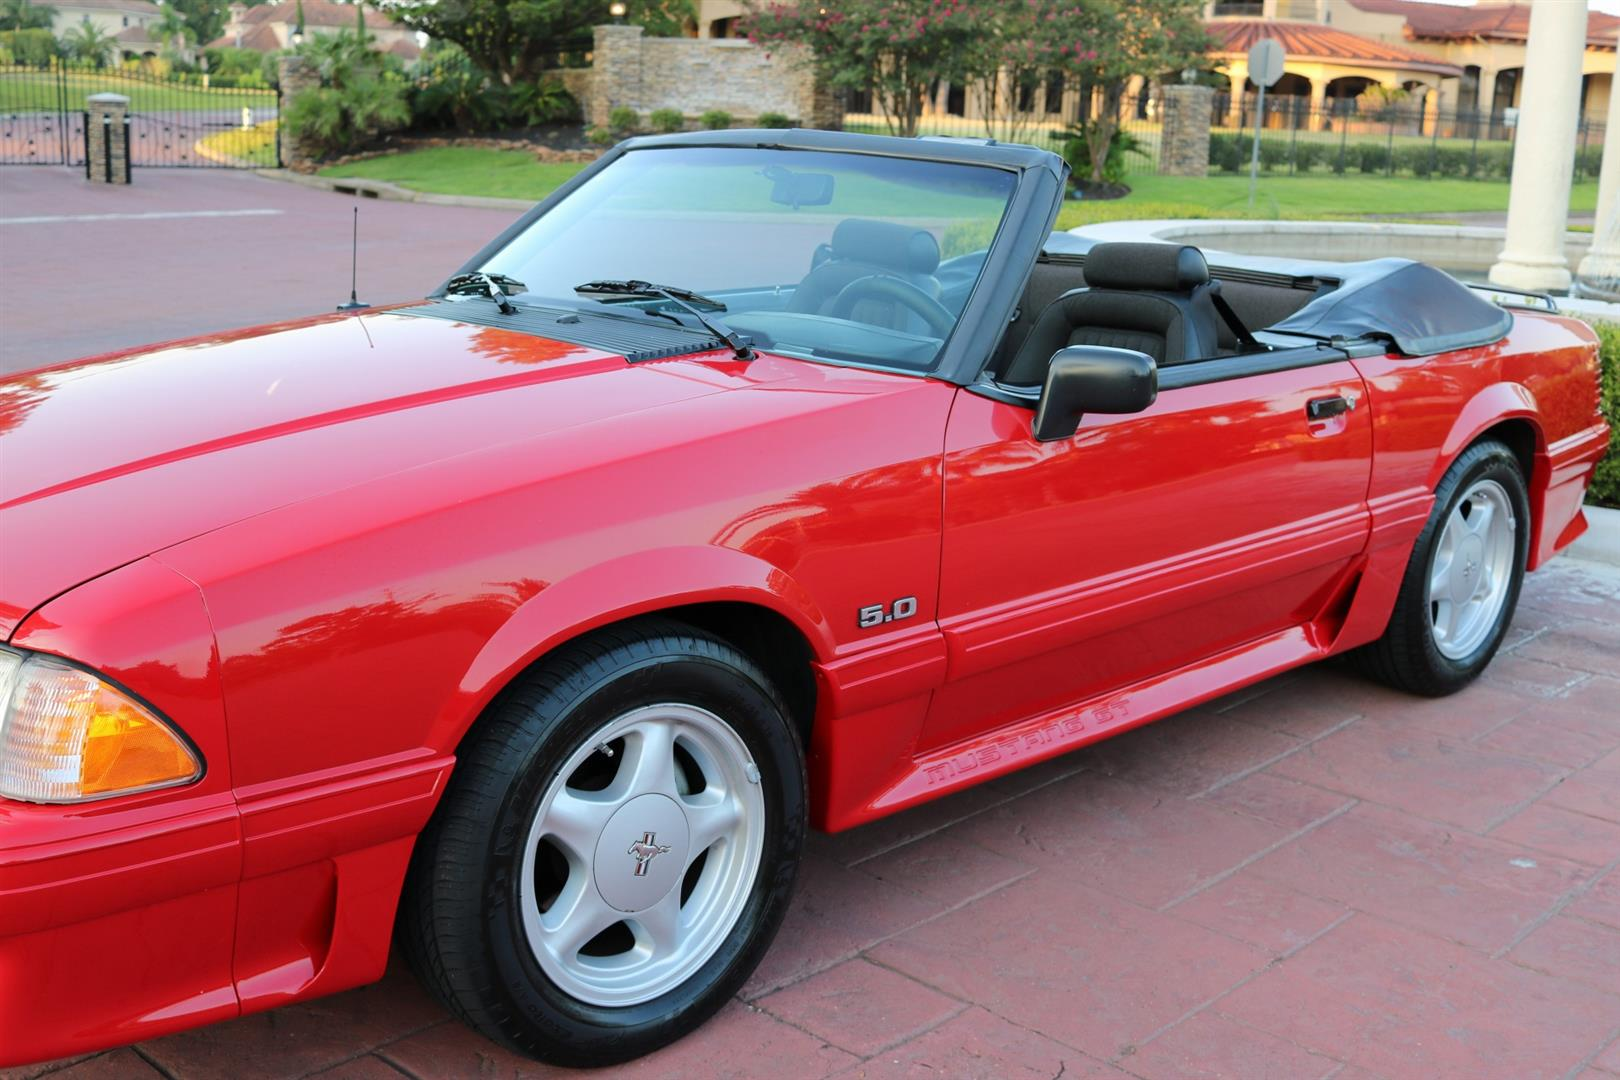 91 Mustang Gt >> 1991 Ford Mustang Gt Convertible